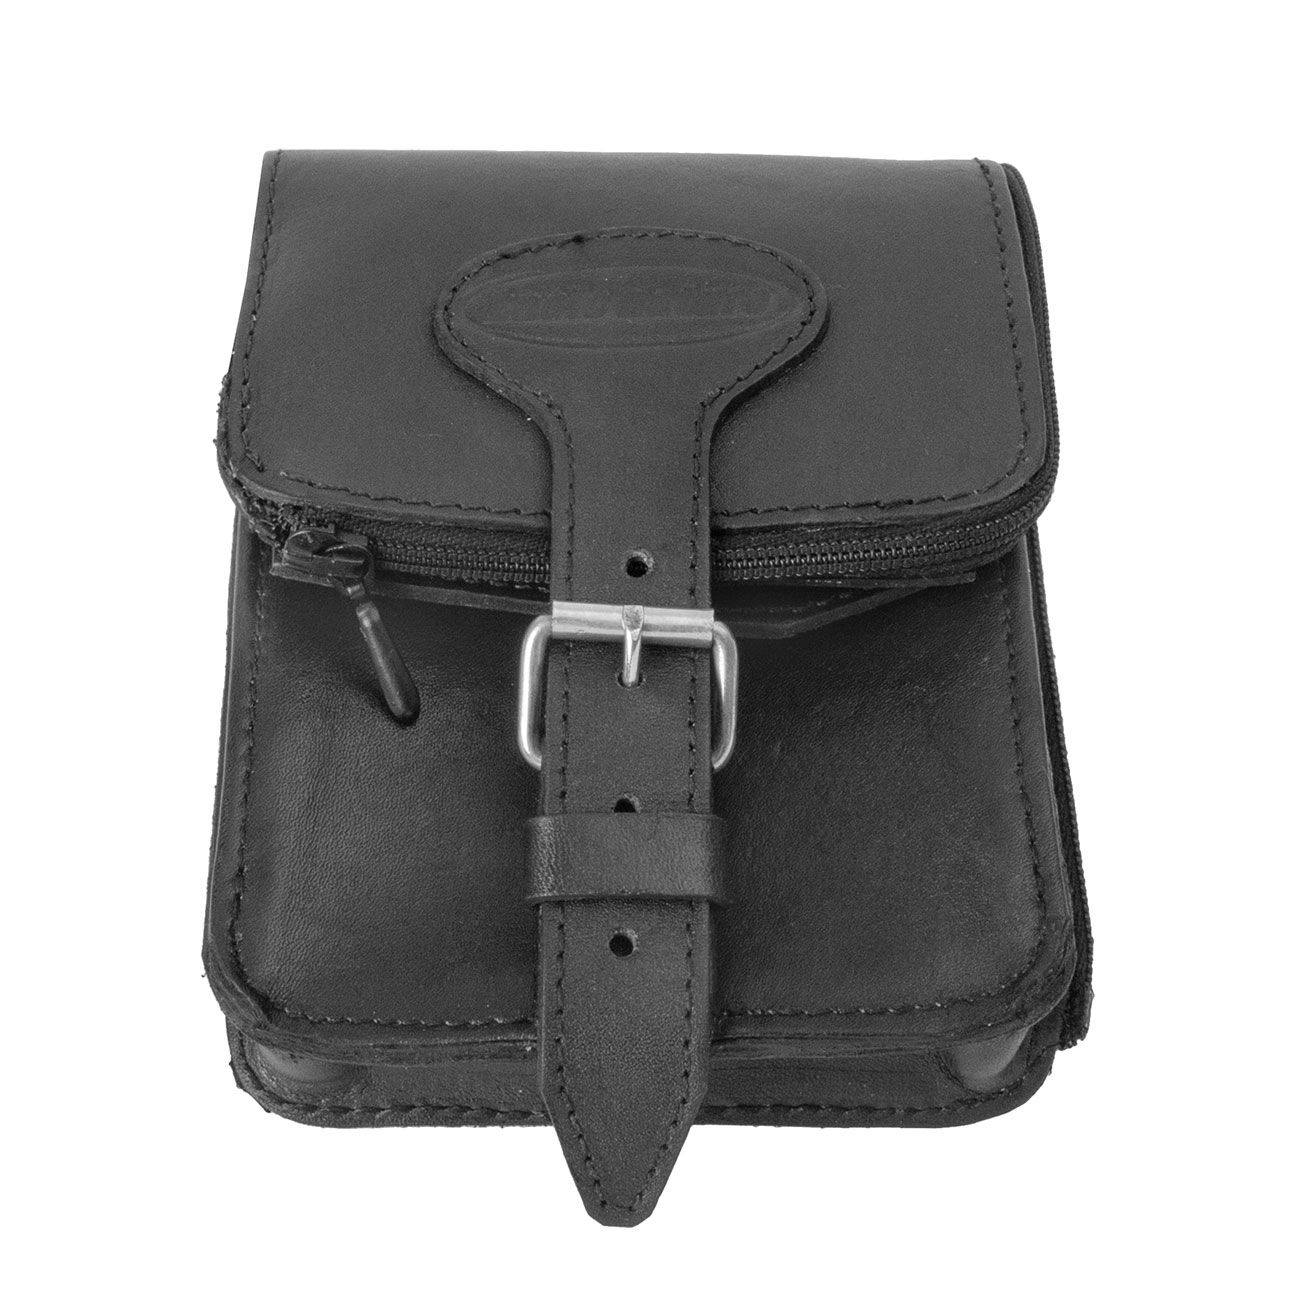 Basic Nature Gürteltasche Belt Safe 10 x 14 cm schwarz 0